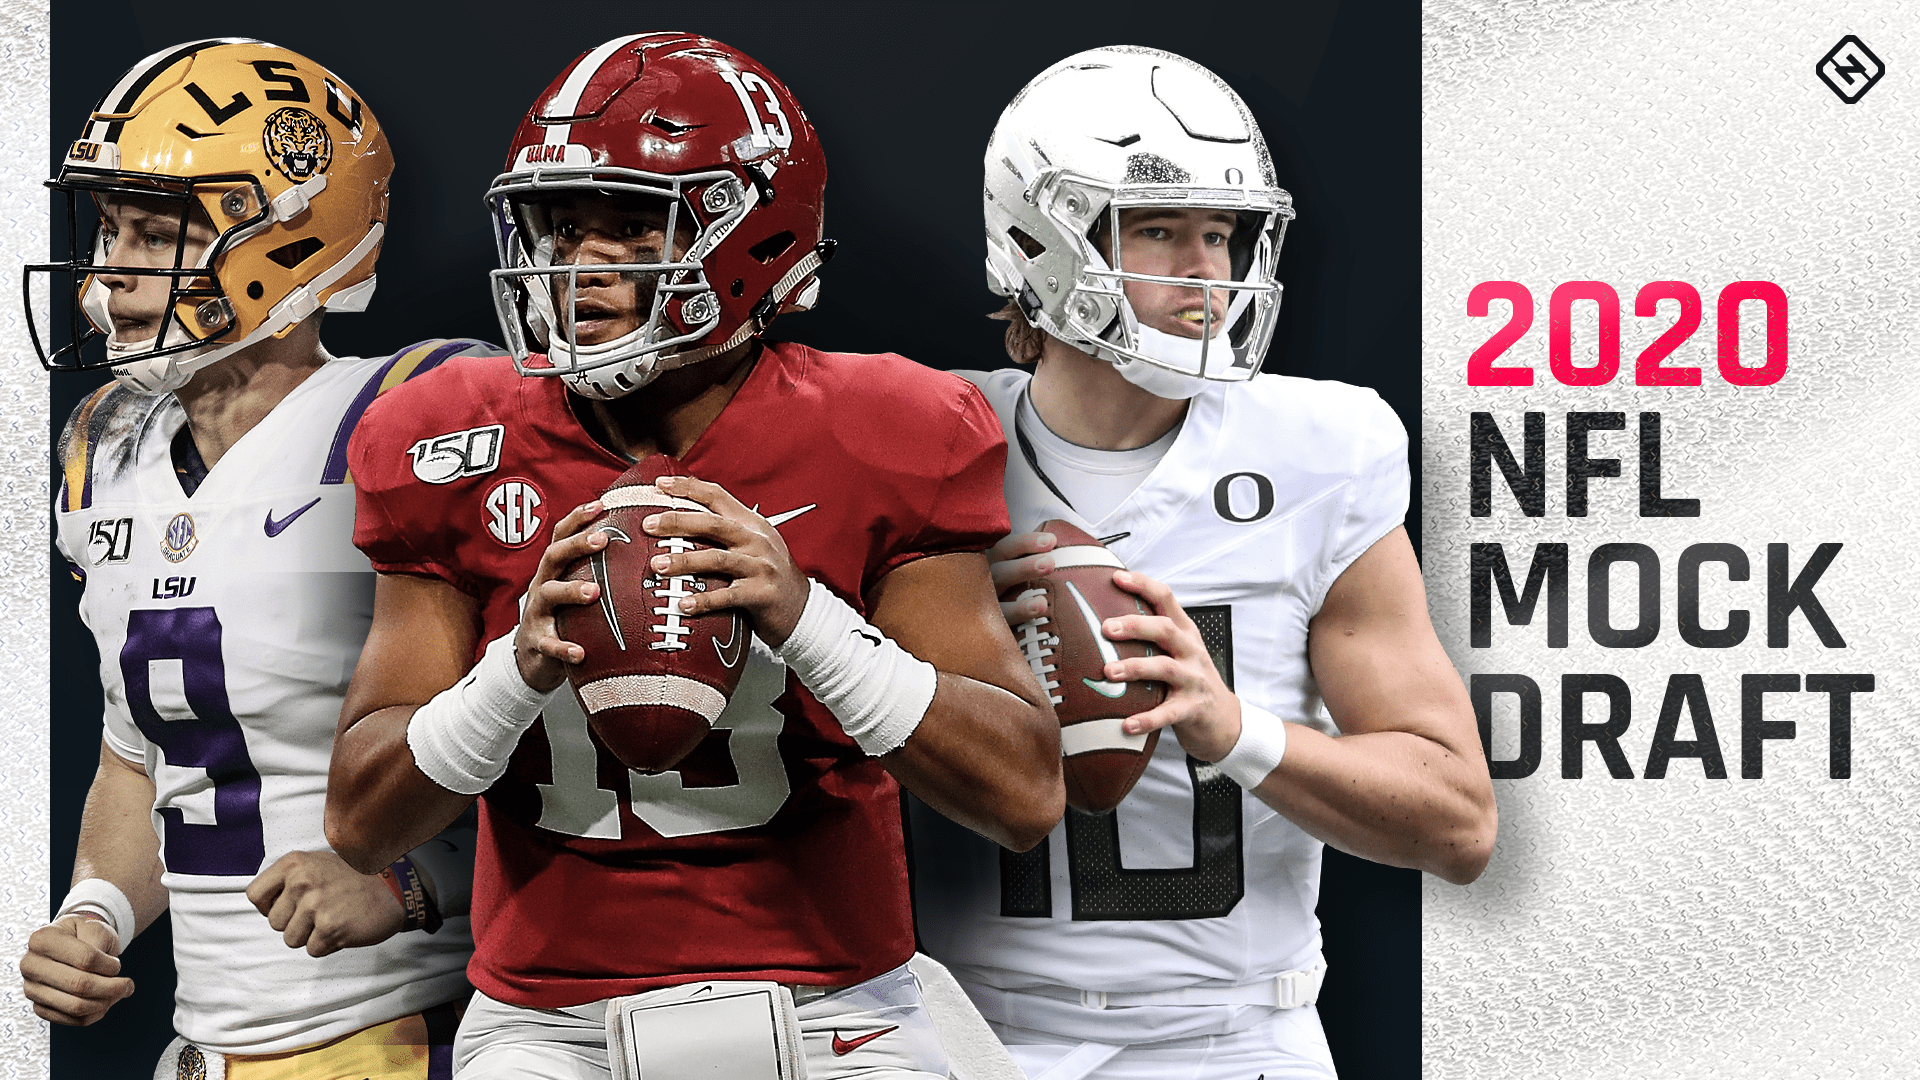 NFL mock draft 2020: Lions, Dolphins pass on Tua Tagovailoa; Eagles, Raiders, Bills go for playmakers